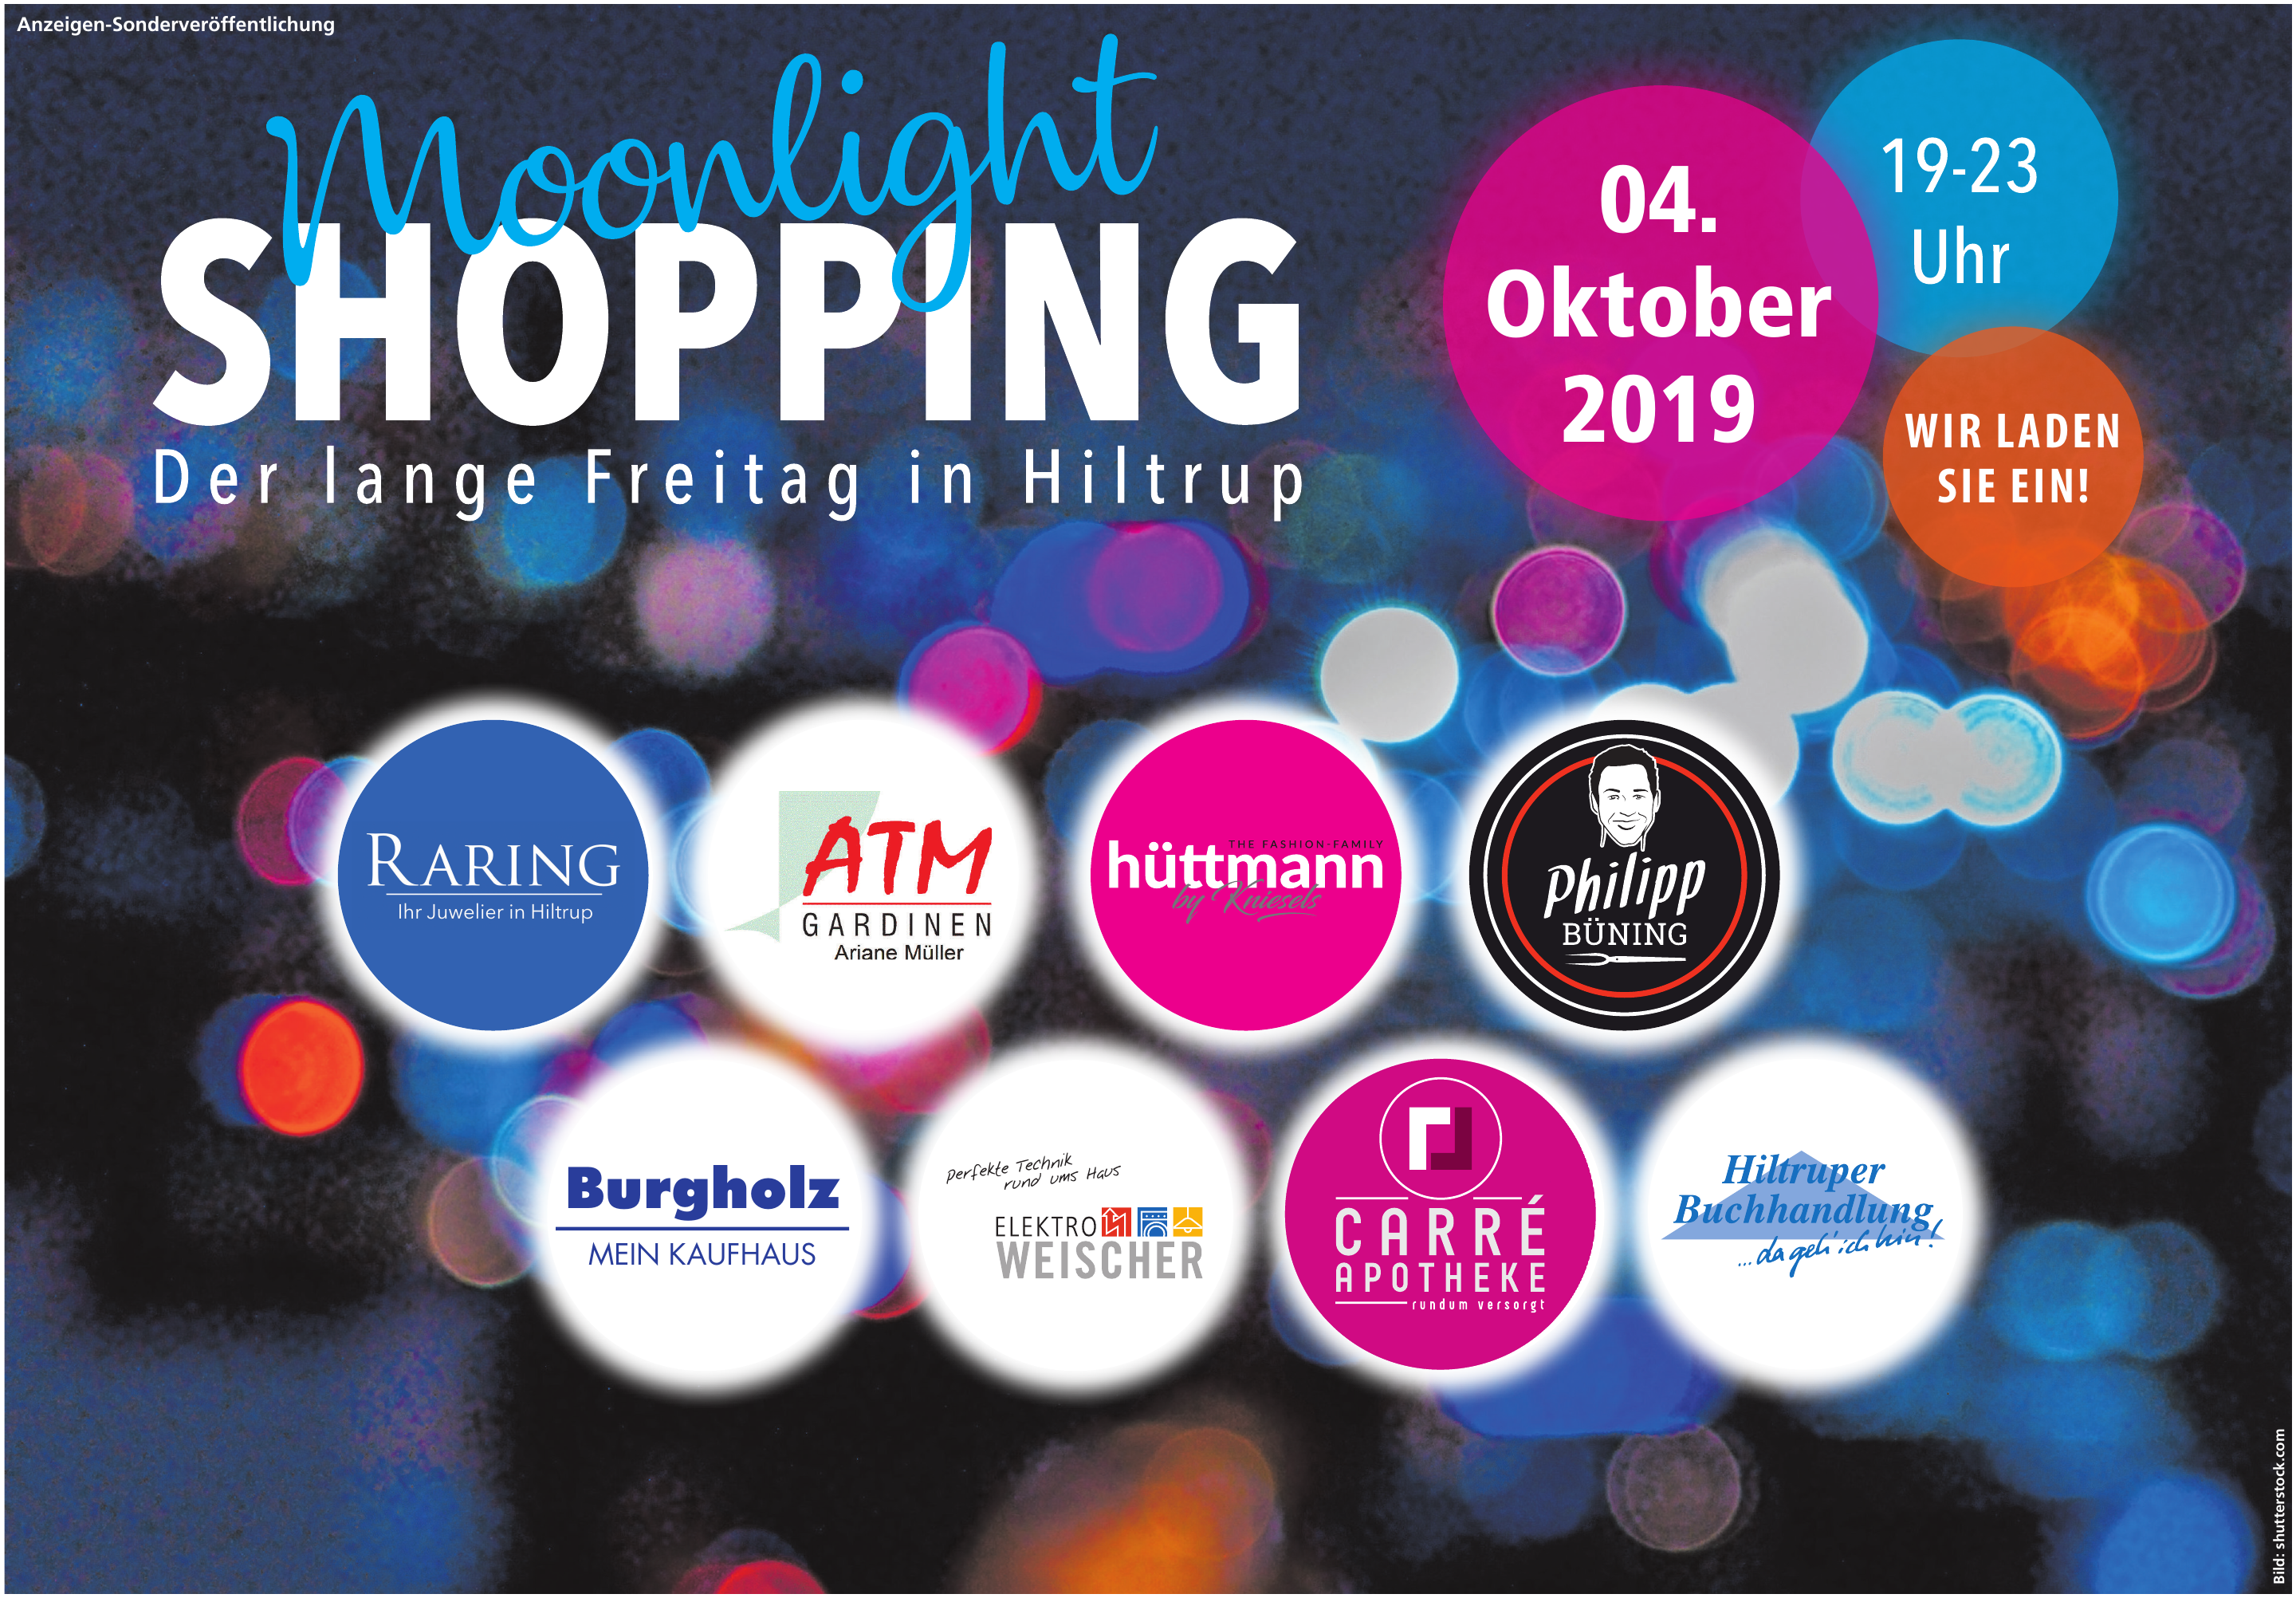 Moonlightshopping in Hiltrup